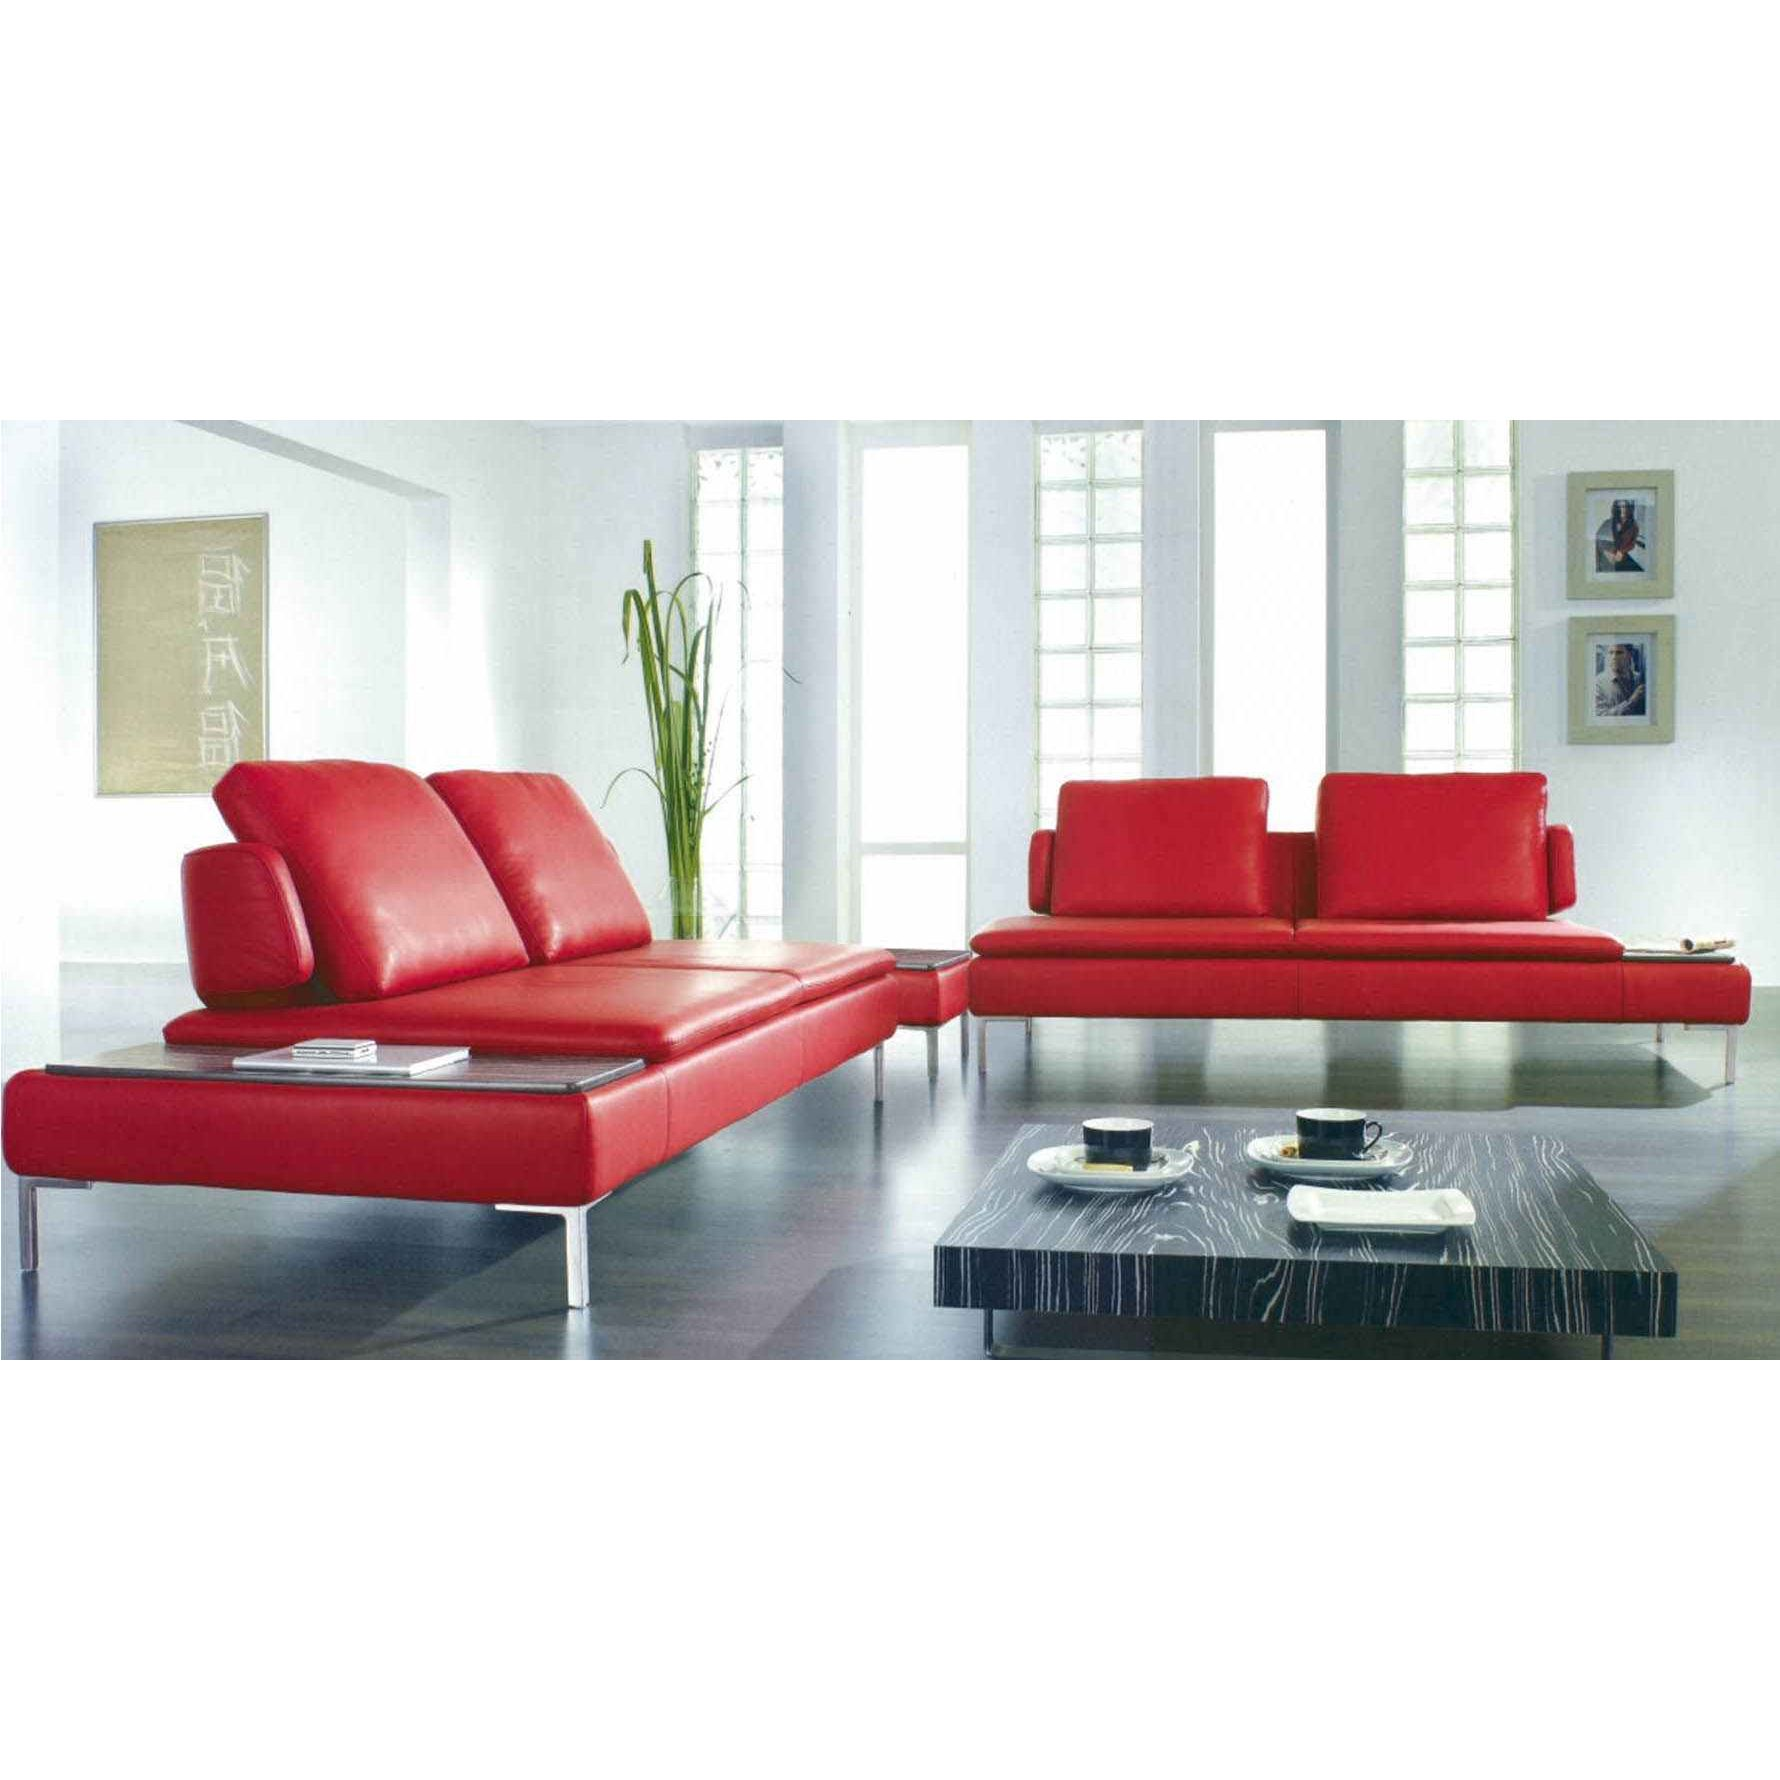 Deco in paris canape d angle design cuir rouge carlton can angledroit carlt - Canape angle cuir rouge ...